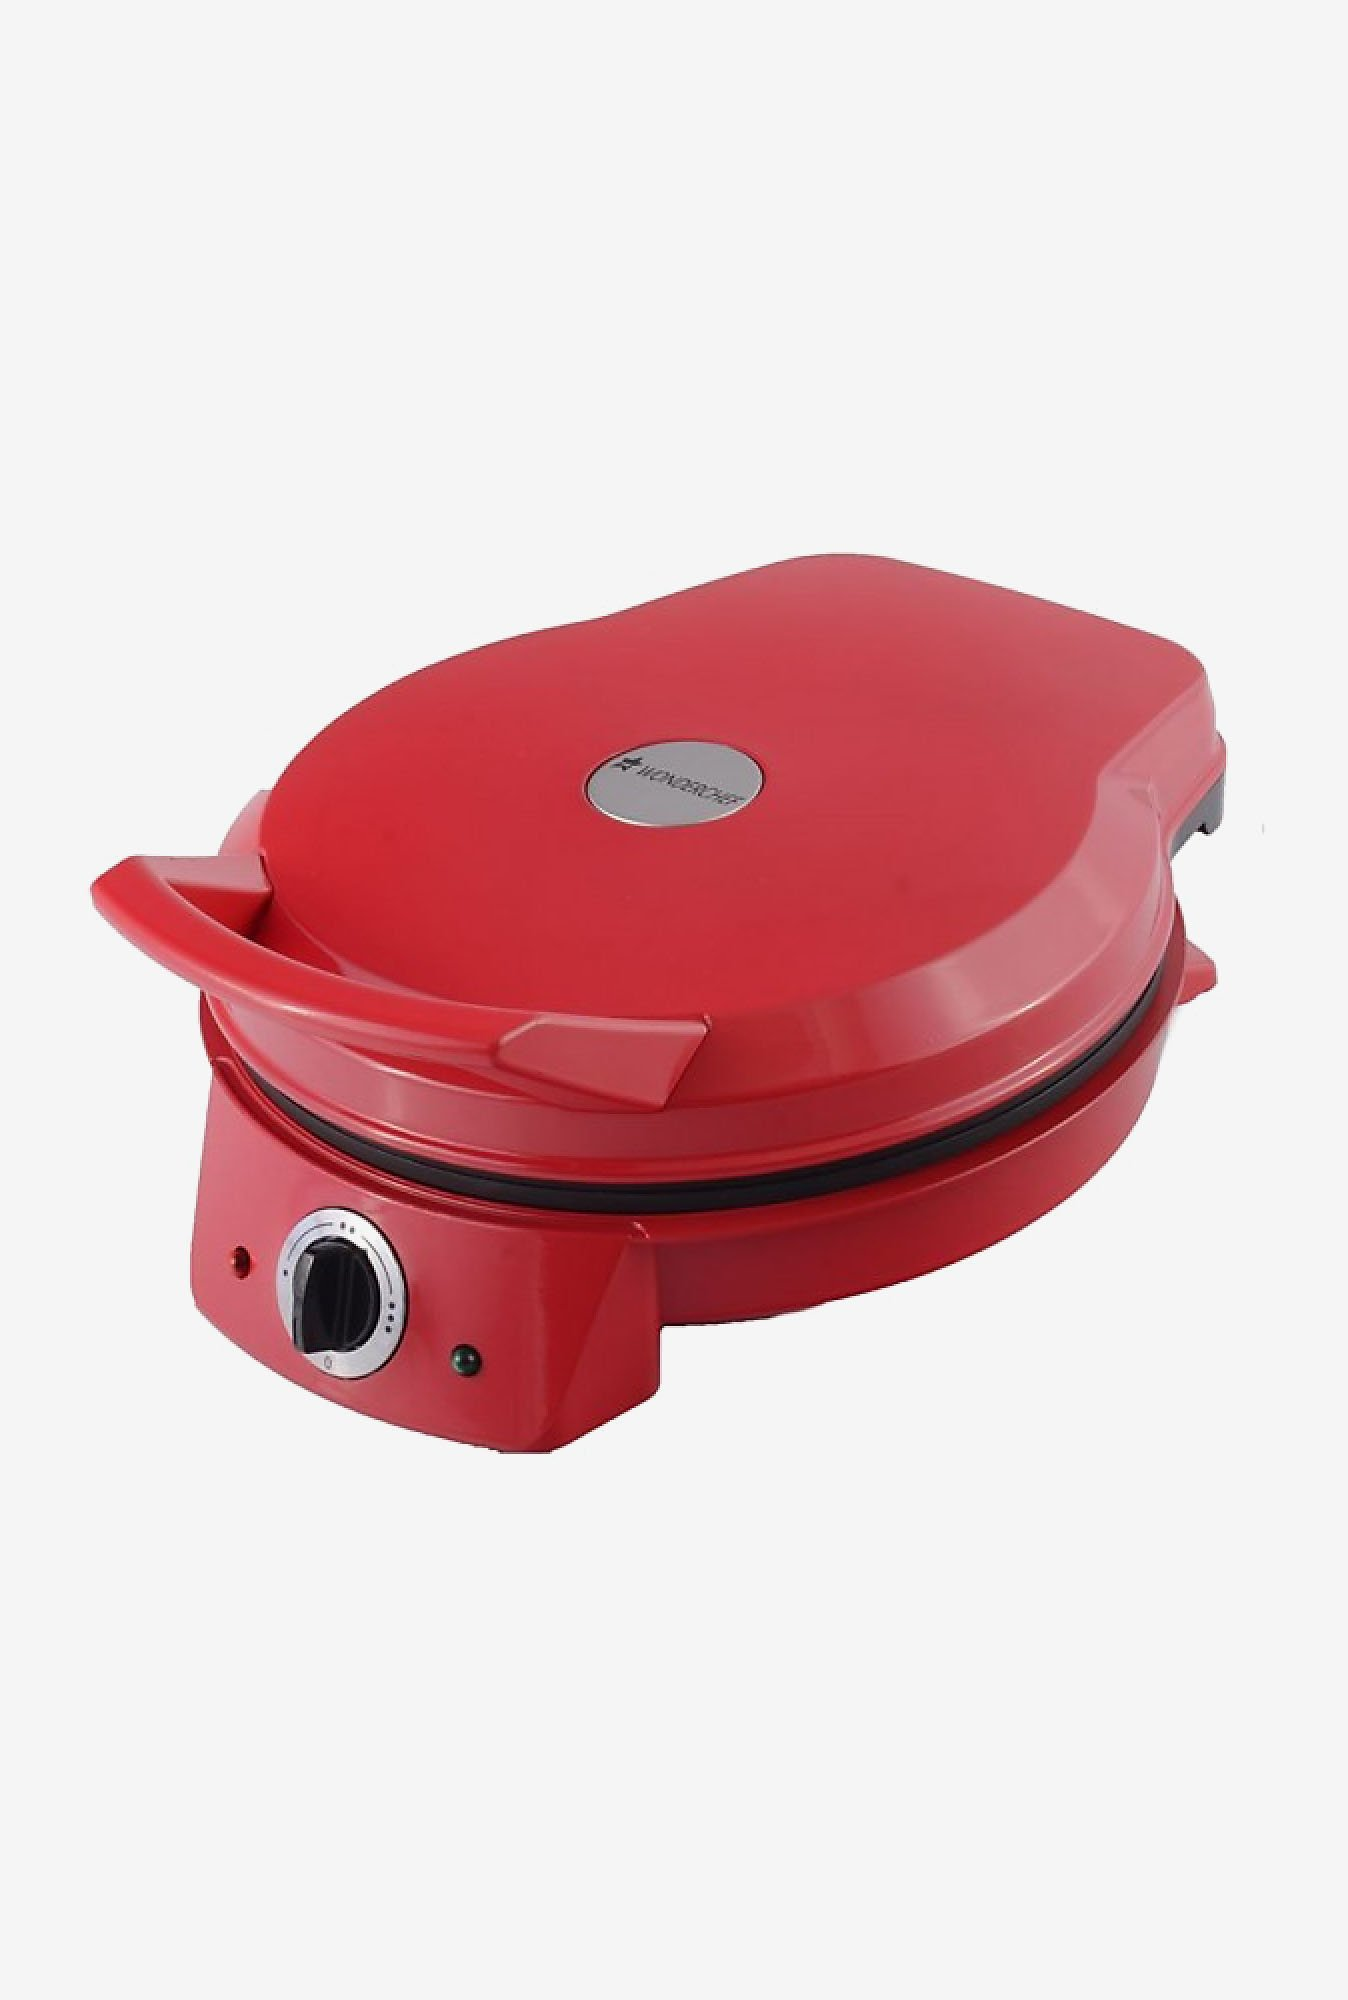 Wonderchef Pizza Italia 1500W 2 Slice Grill (Red)